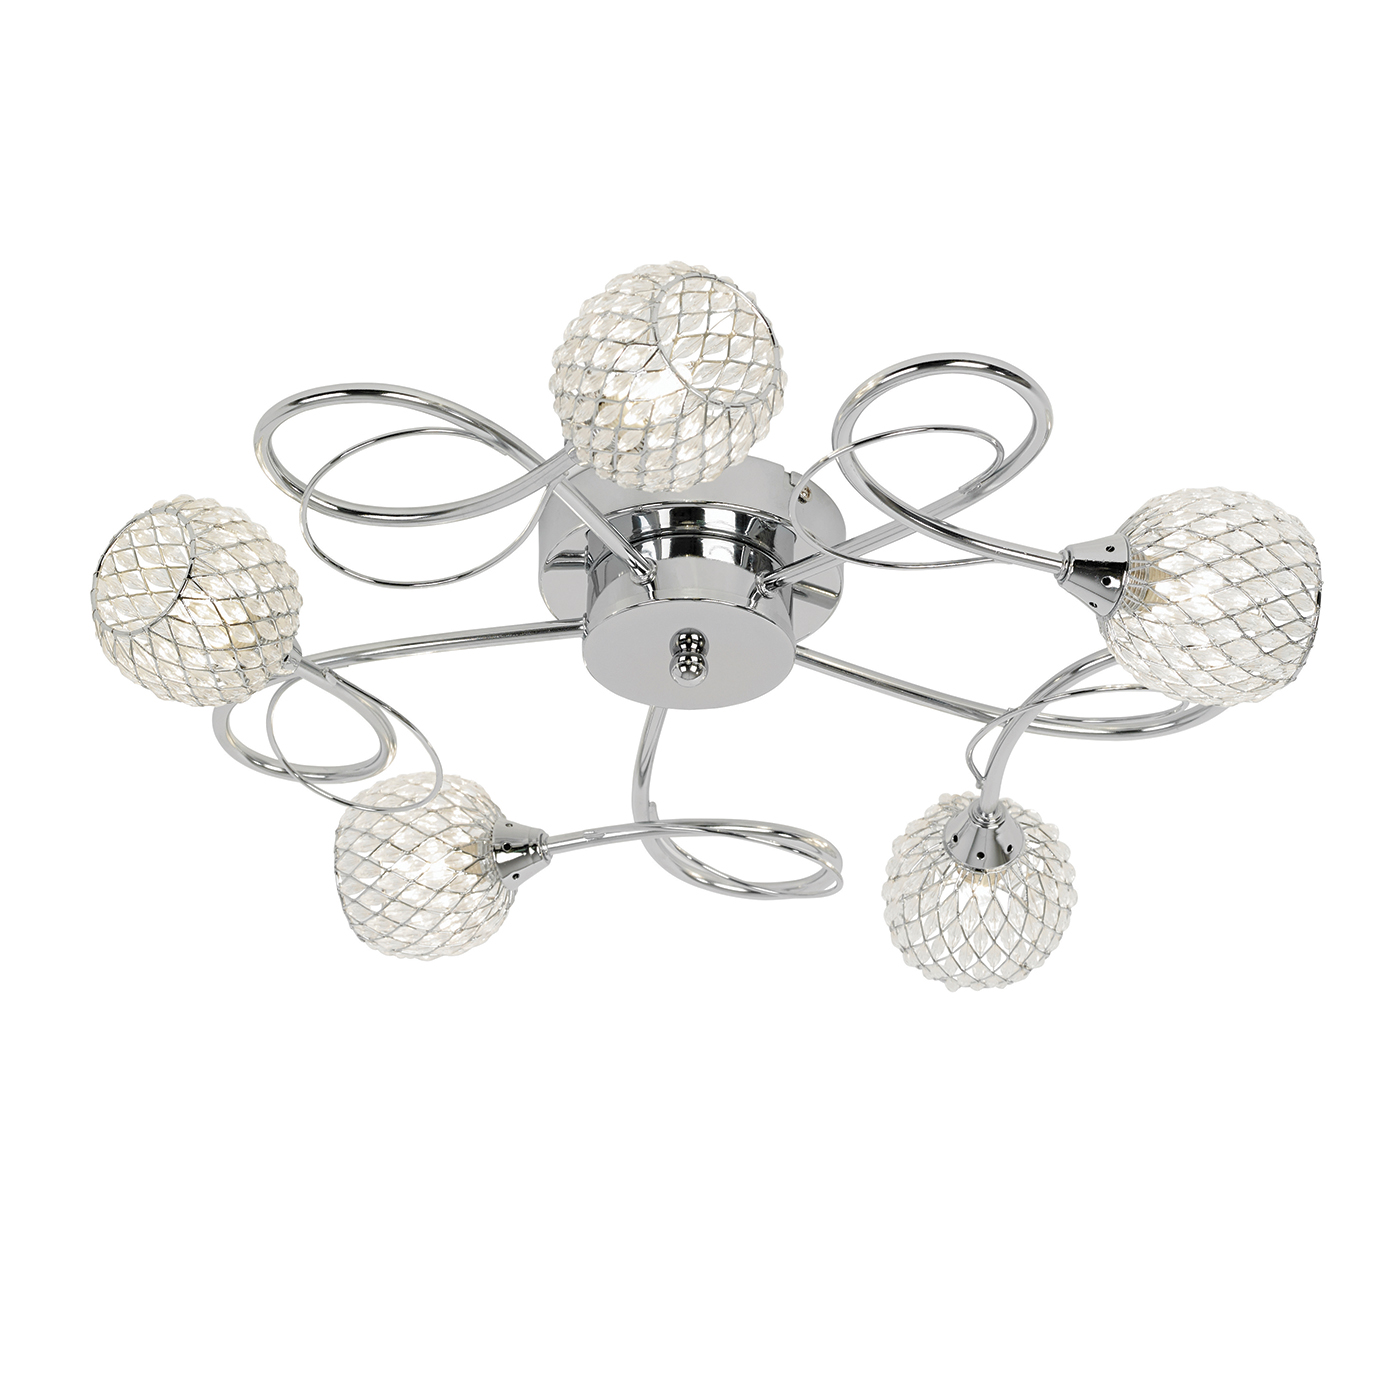 Endon Aherne ceiling light 5x 33W Chrome effect chrome wire & clear bead shade Thumbnail 1